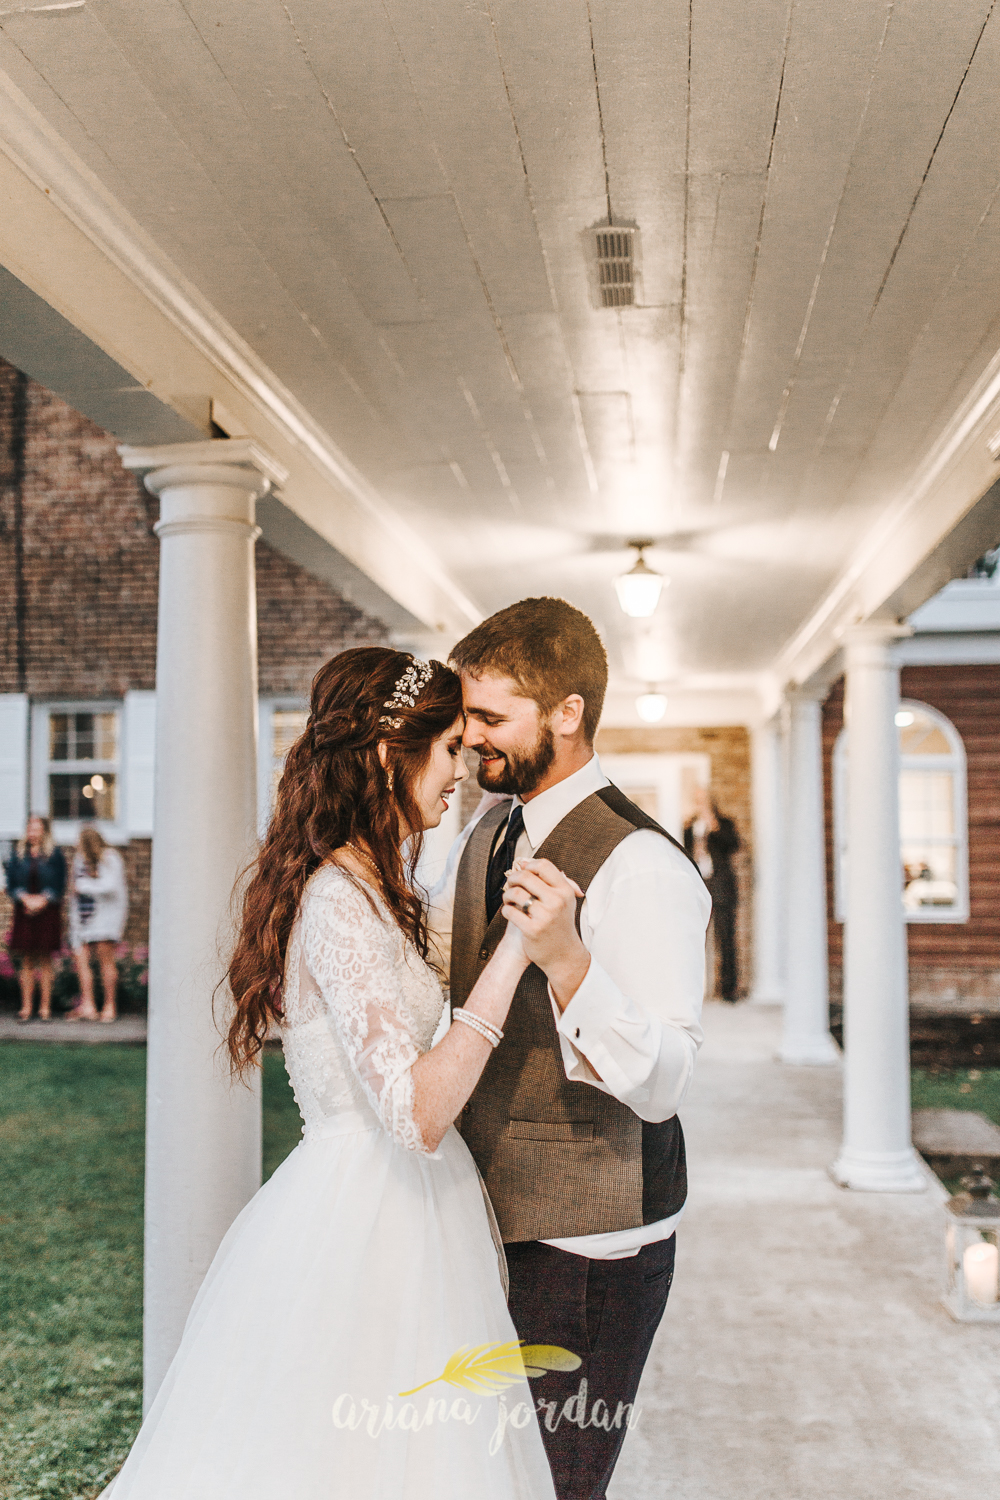 237 - Ariana Jordan - Kentucky Wedding Photographer - Landon & Tabitha 7358.jpg